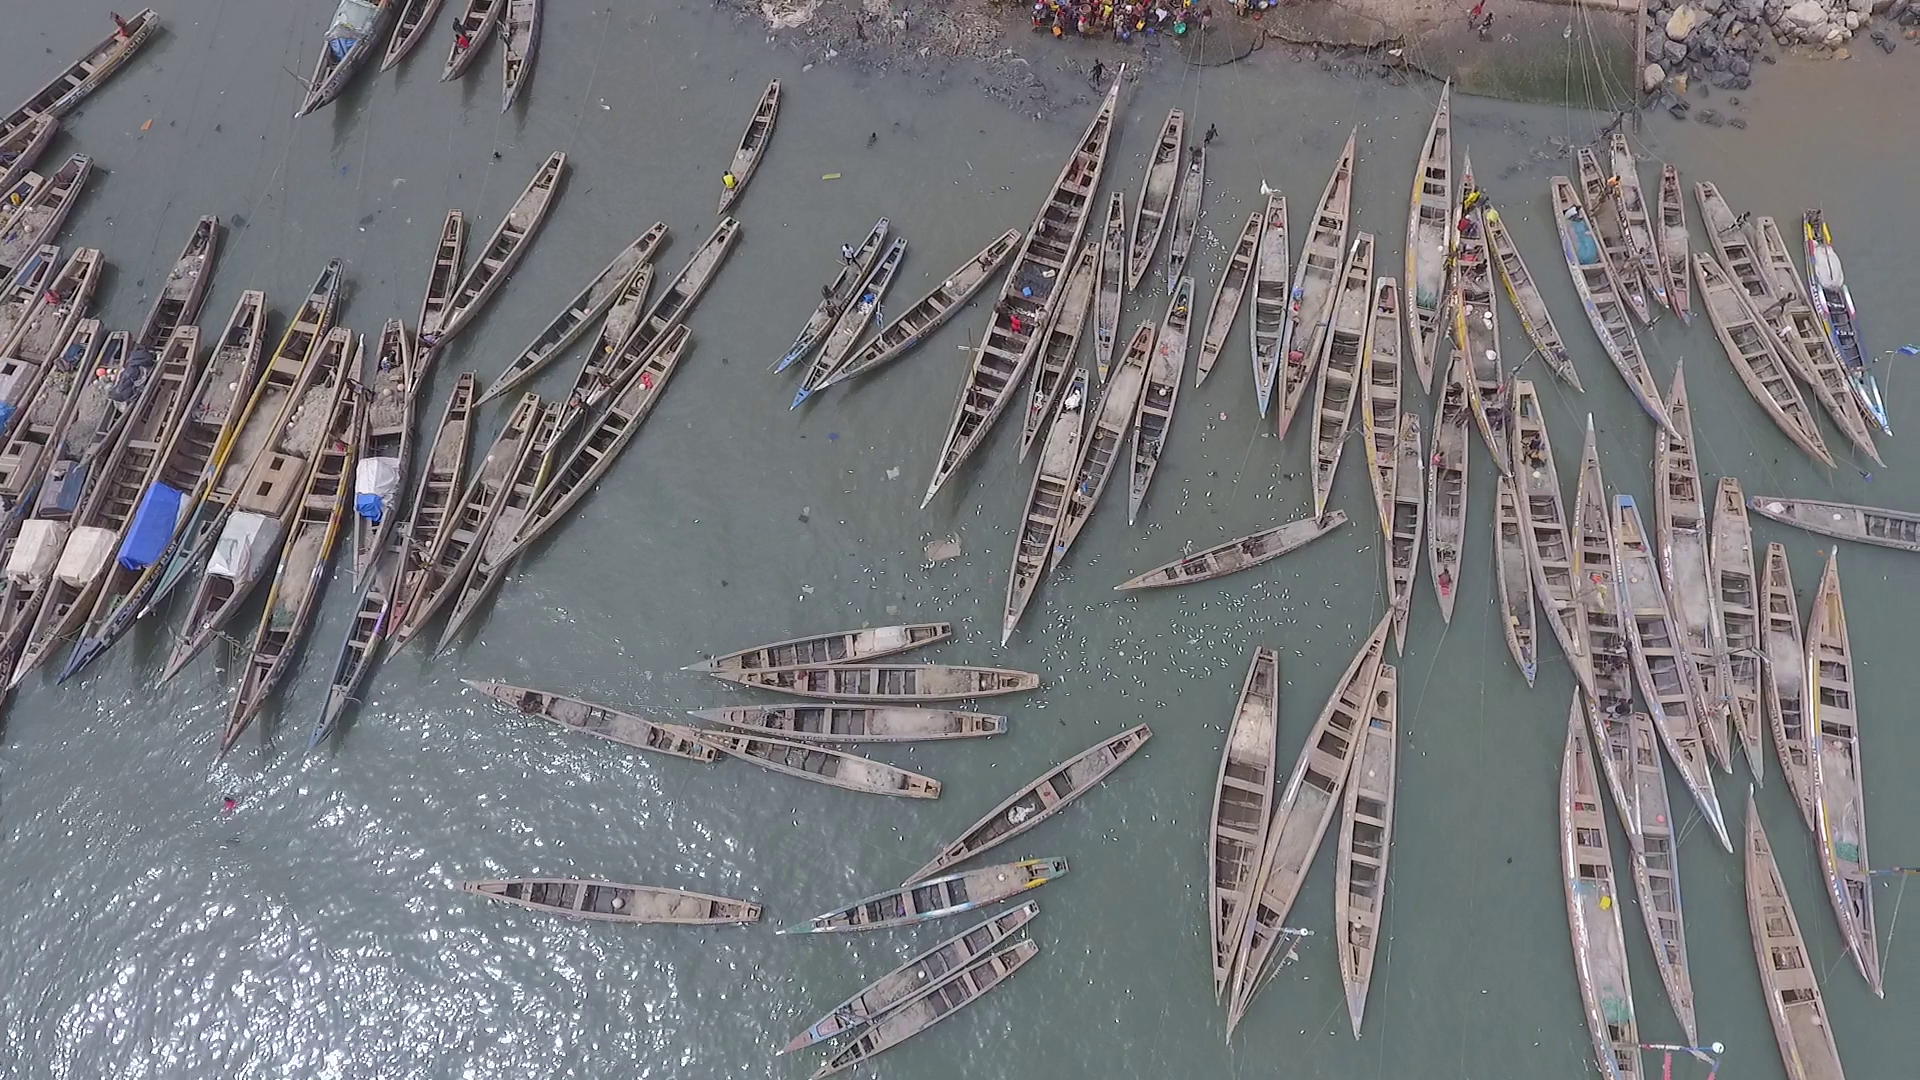 local fisherman working together to protect their future & prevent an environmental disaster -